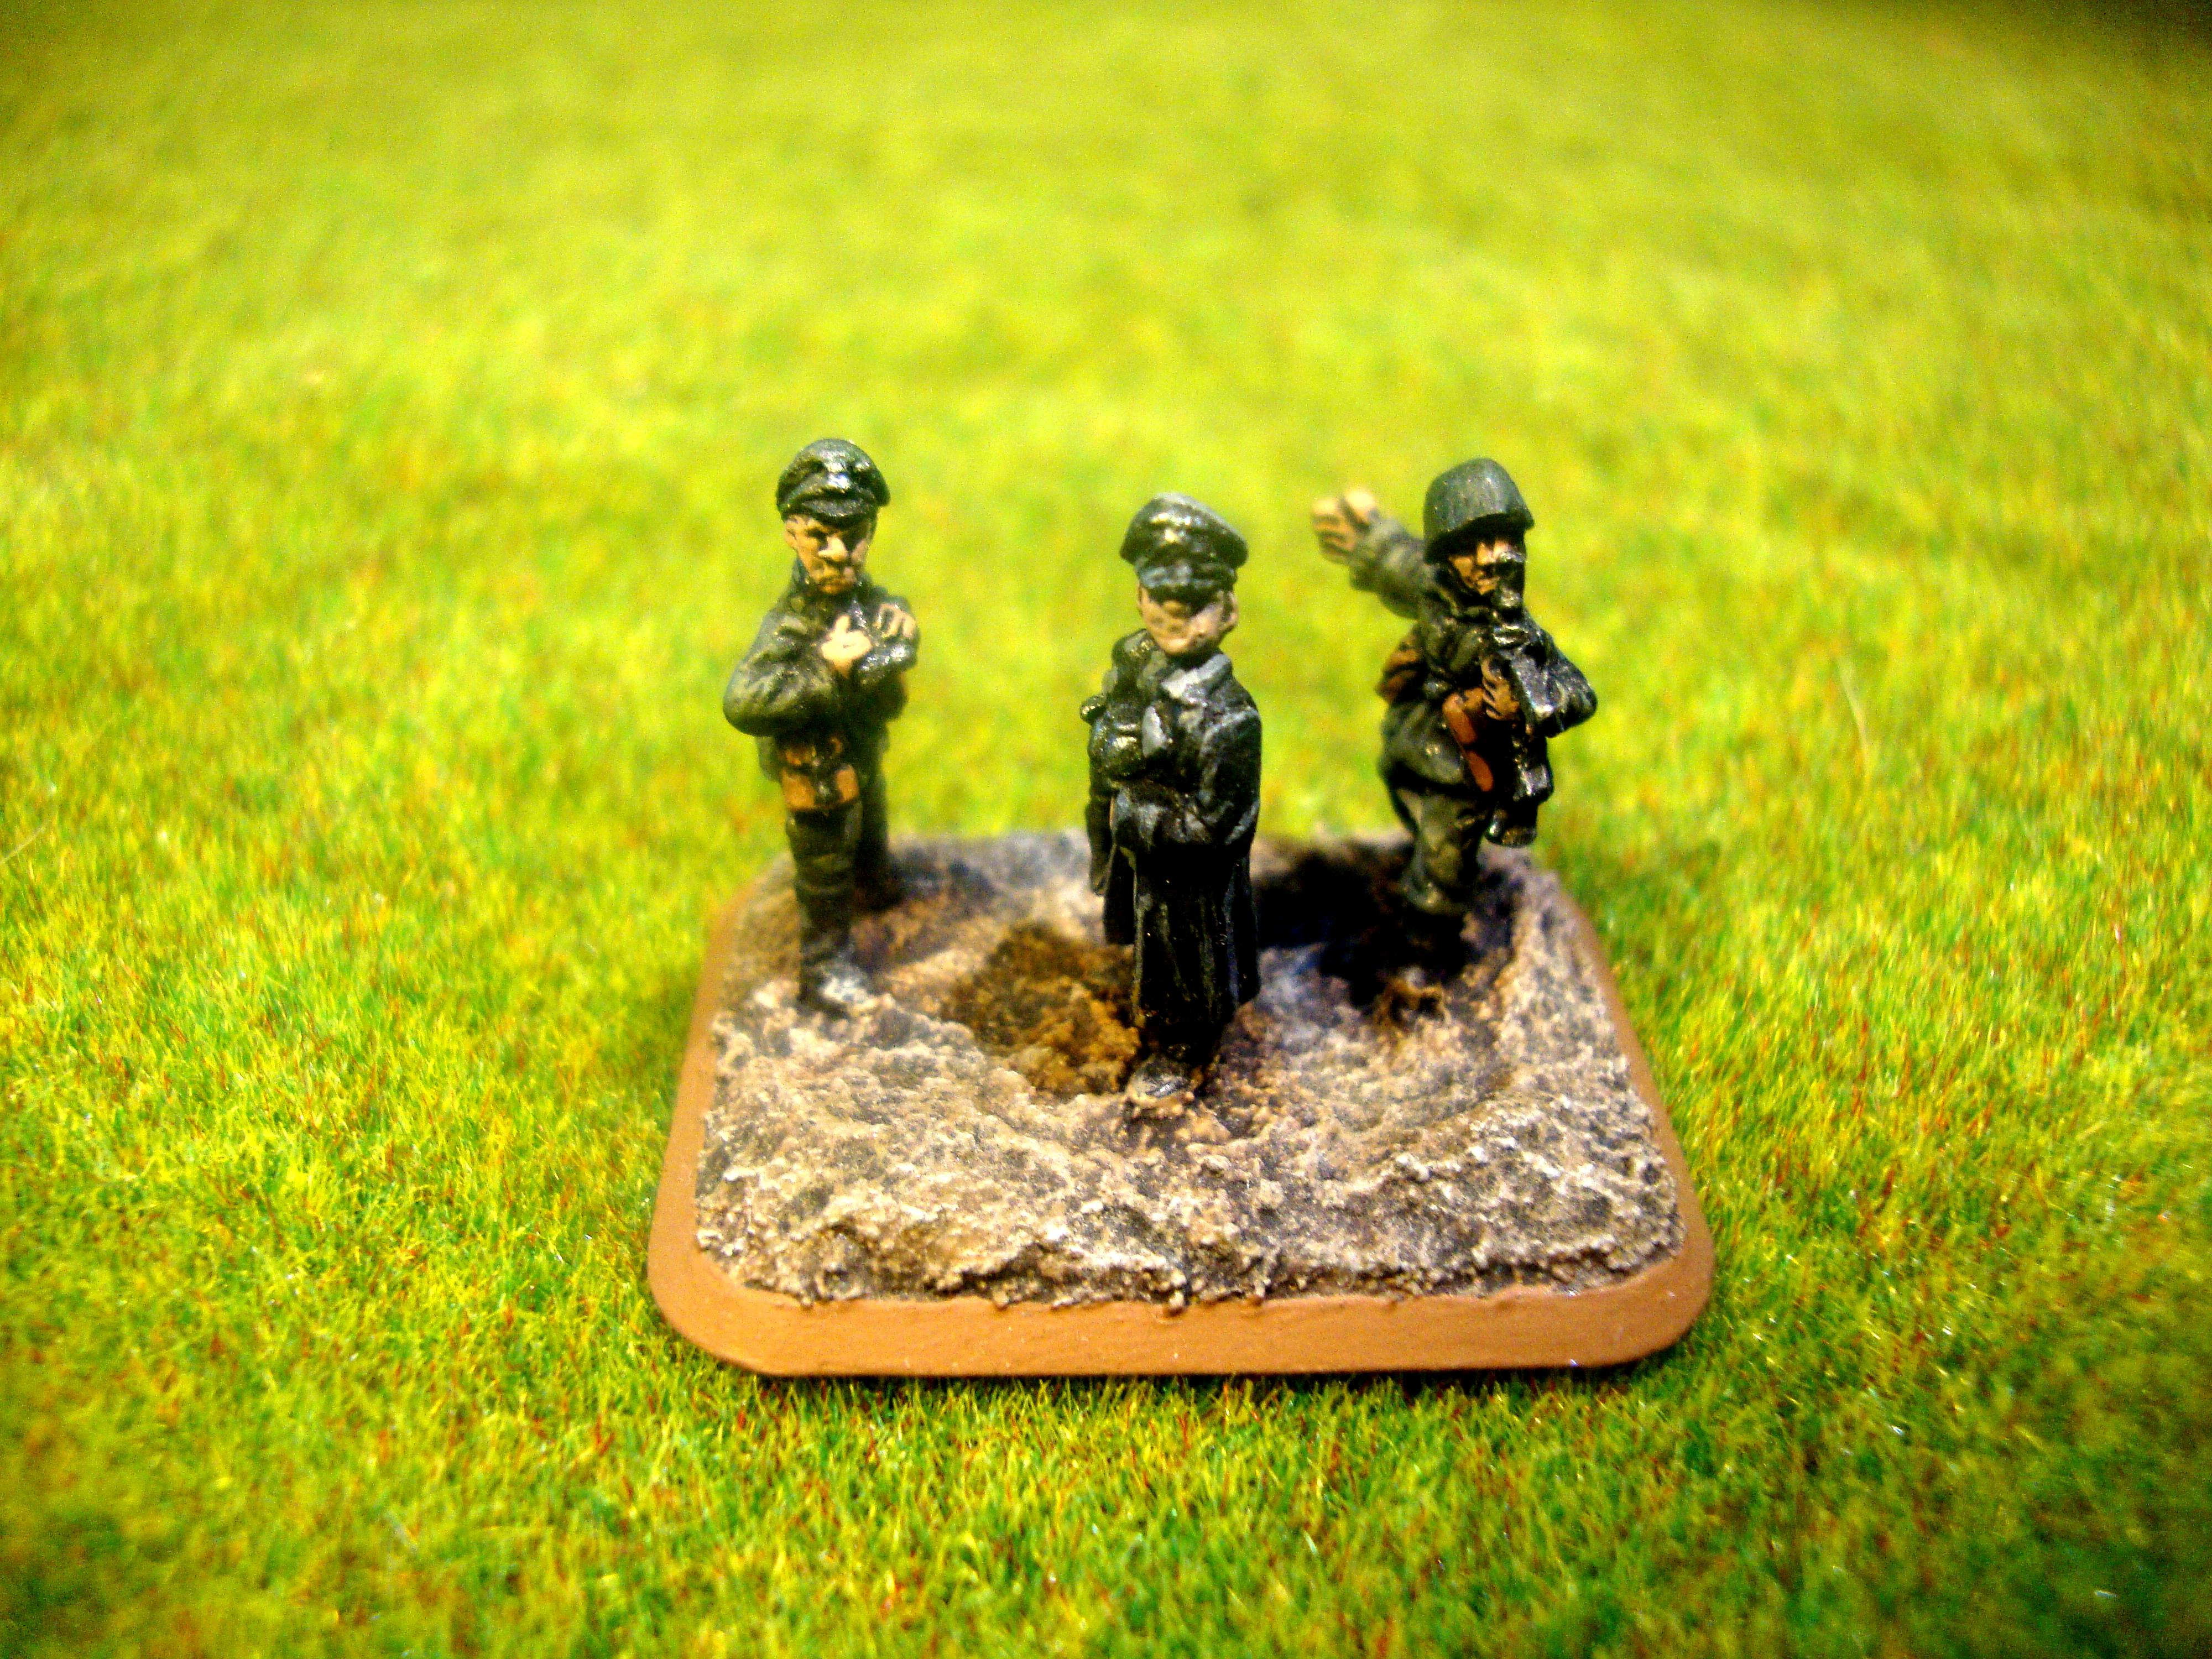 Command Team, Flames Of War, Germans, Grenadiers, Infantry, Infantry Platoon, Mg 42, Panzerfaust, Panzergrenadiere, Panzerschreck, Platoon, World War 2